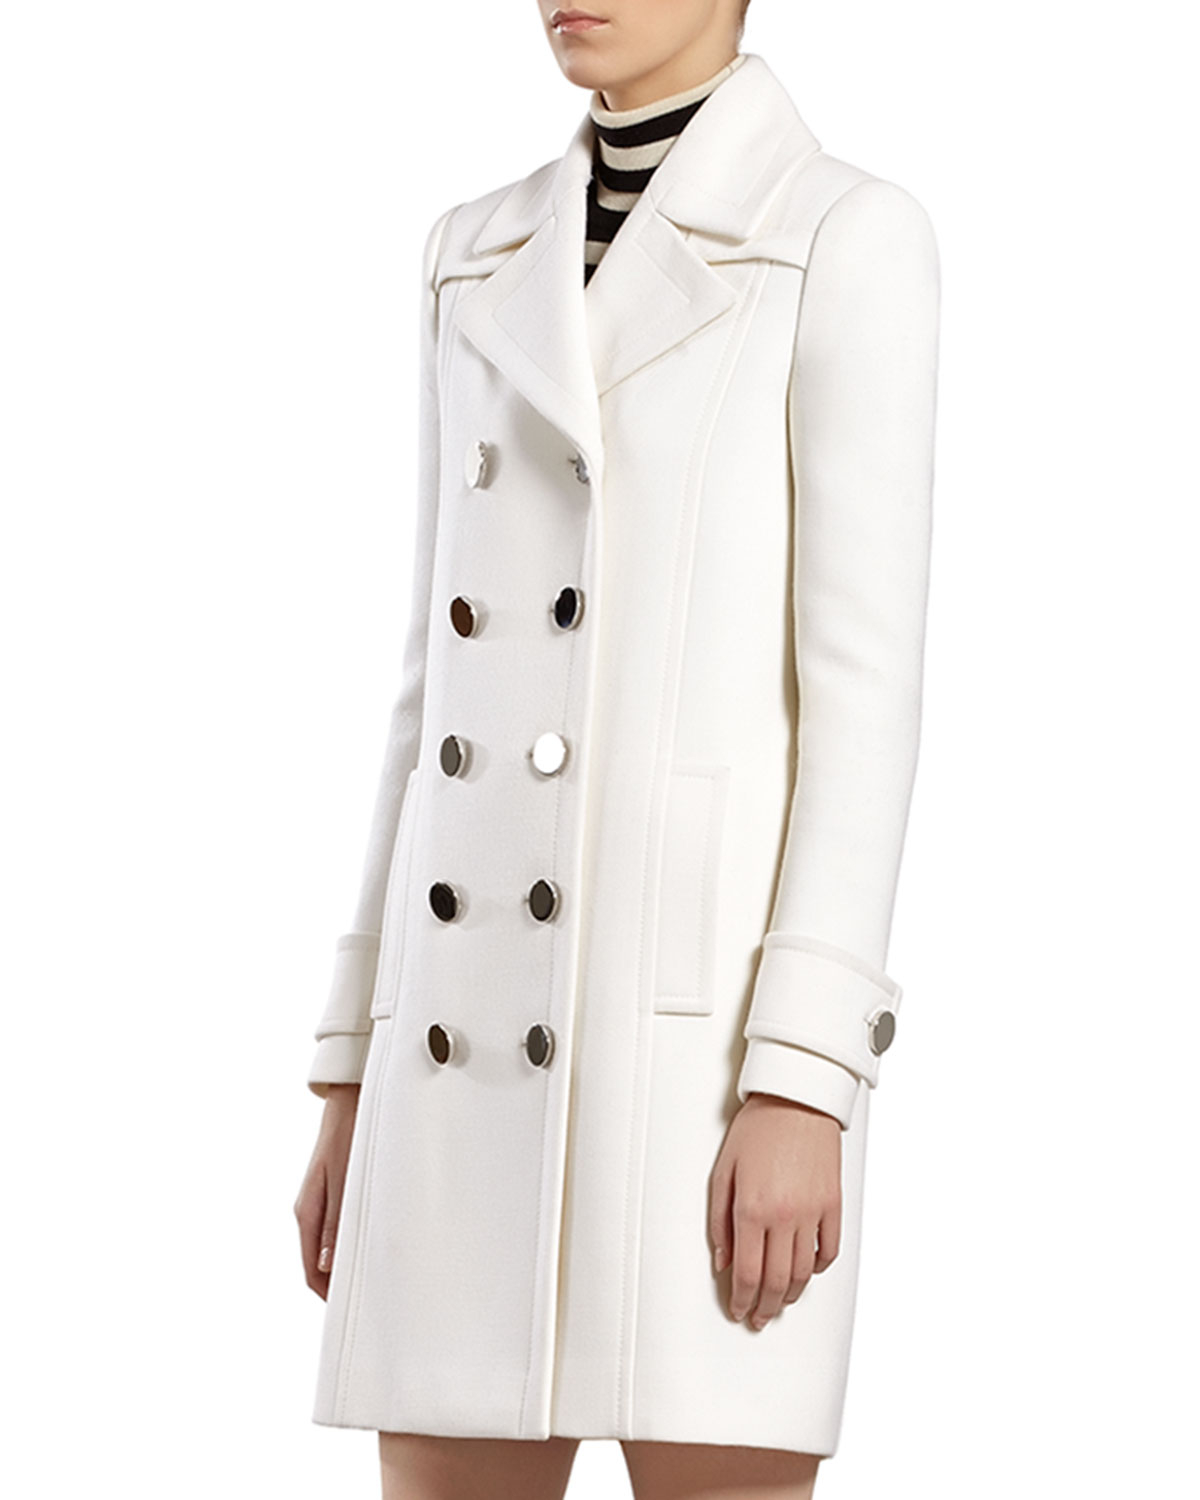 Gucci White Wool Coat in White | Lyst